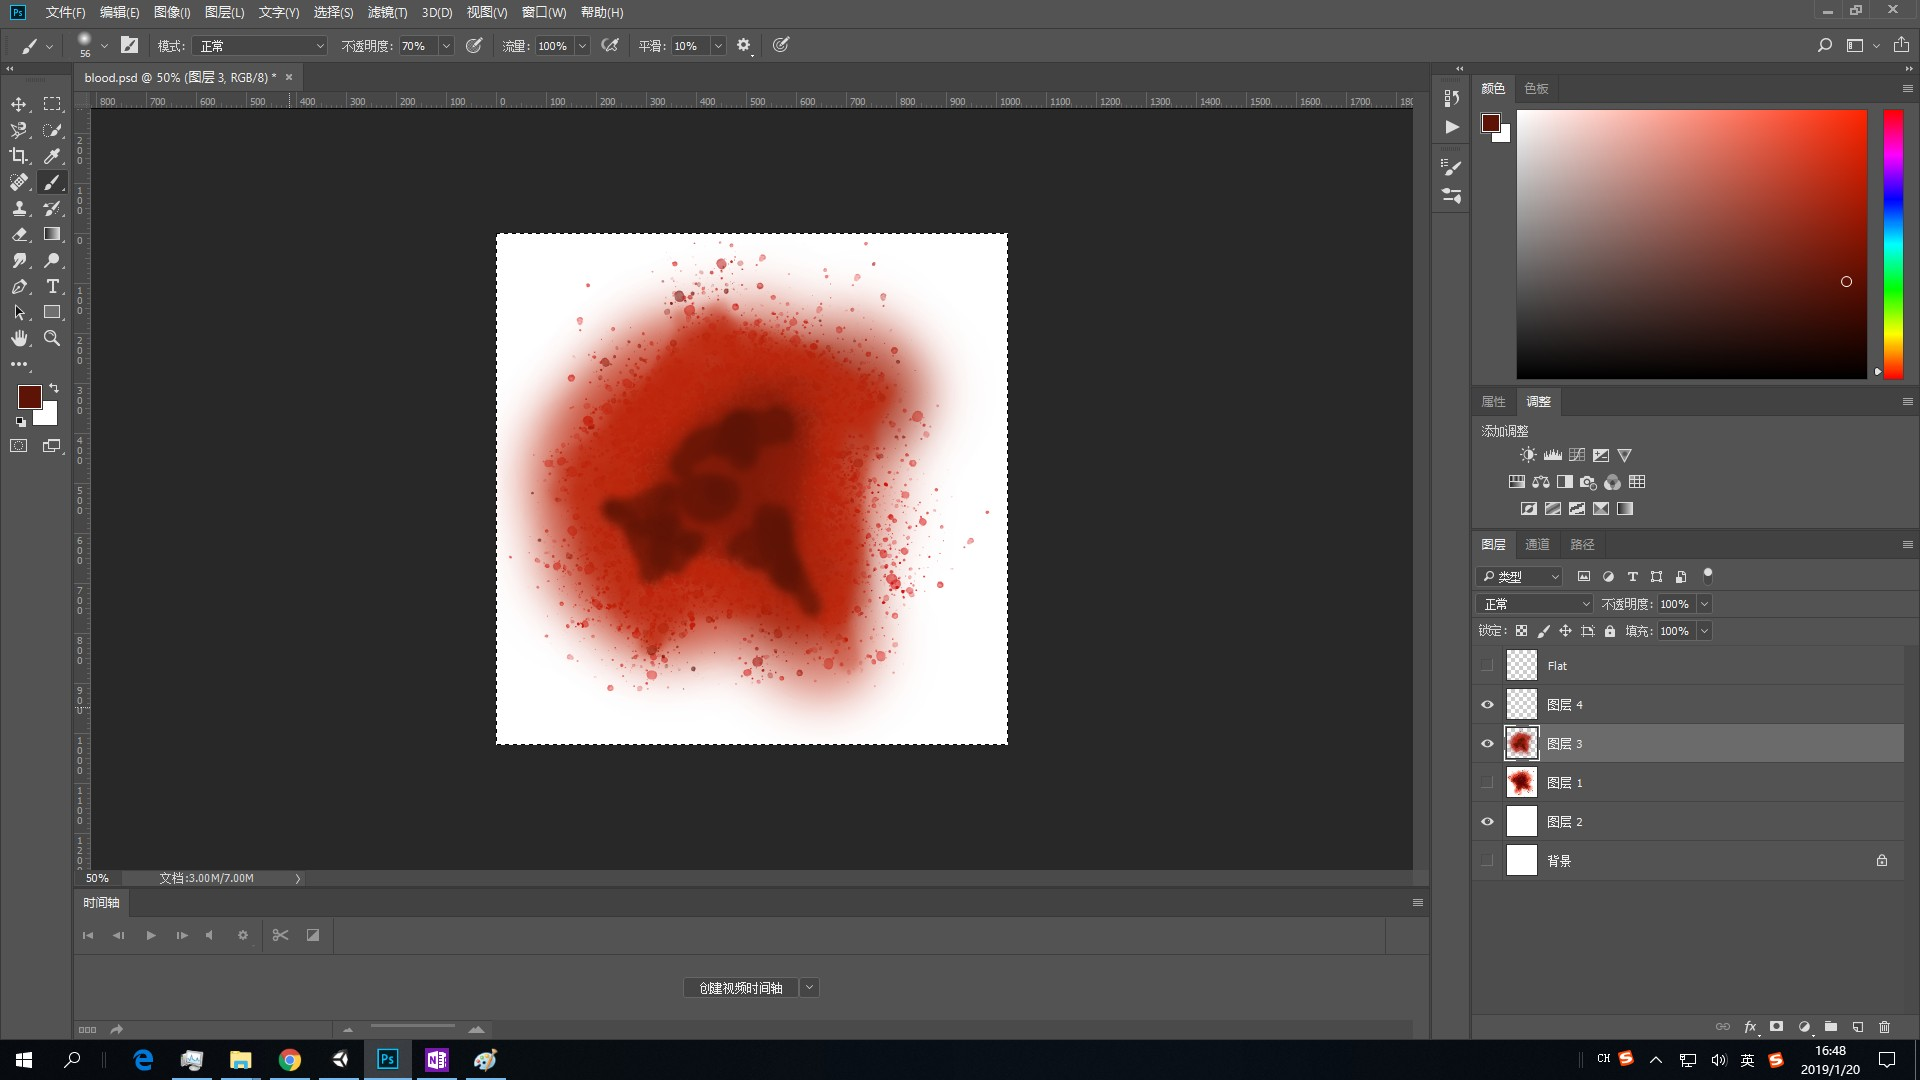 blood_1.png